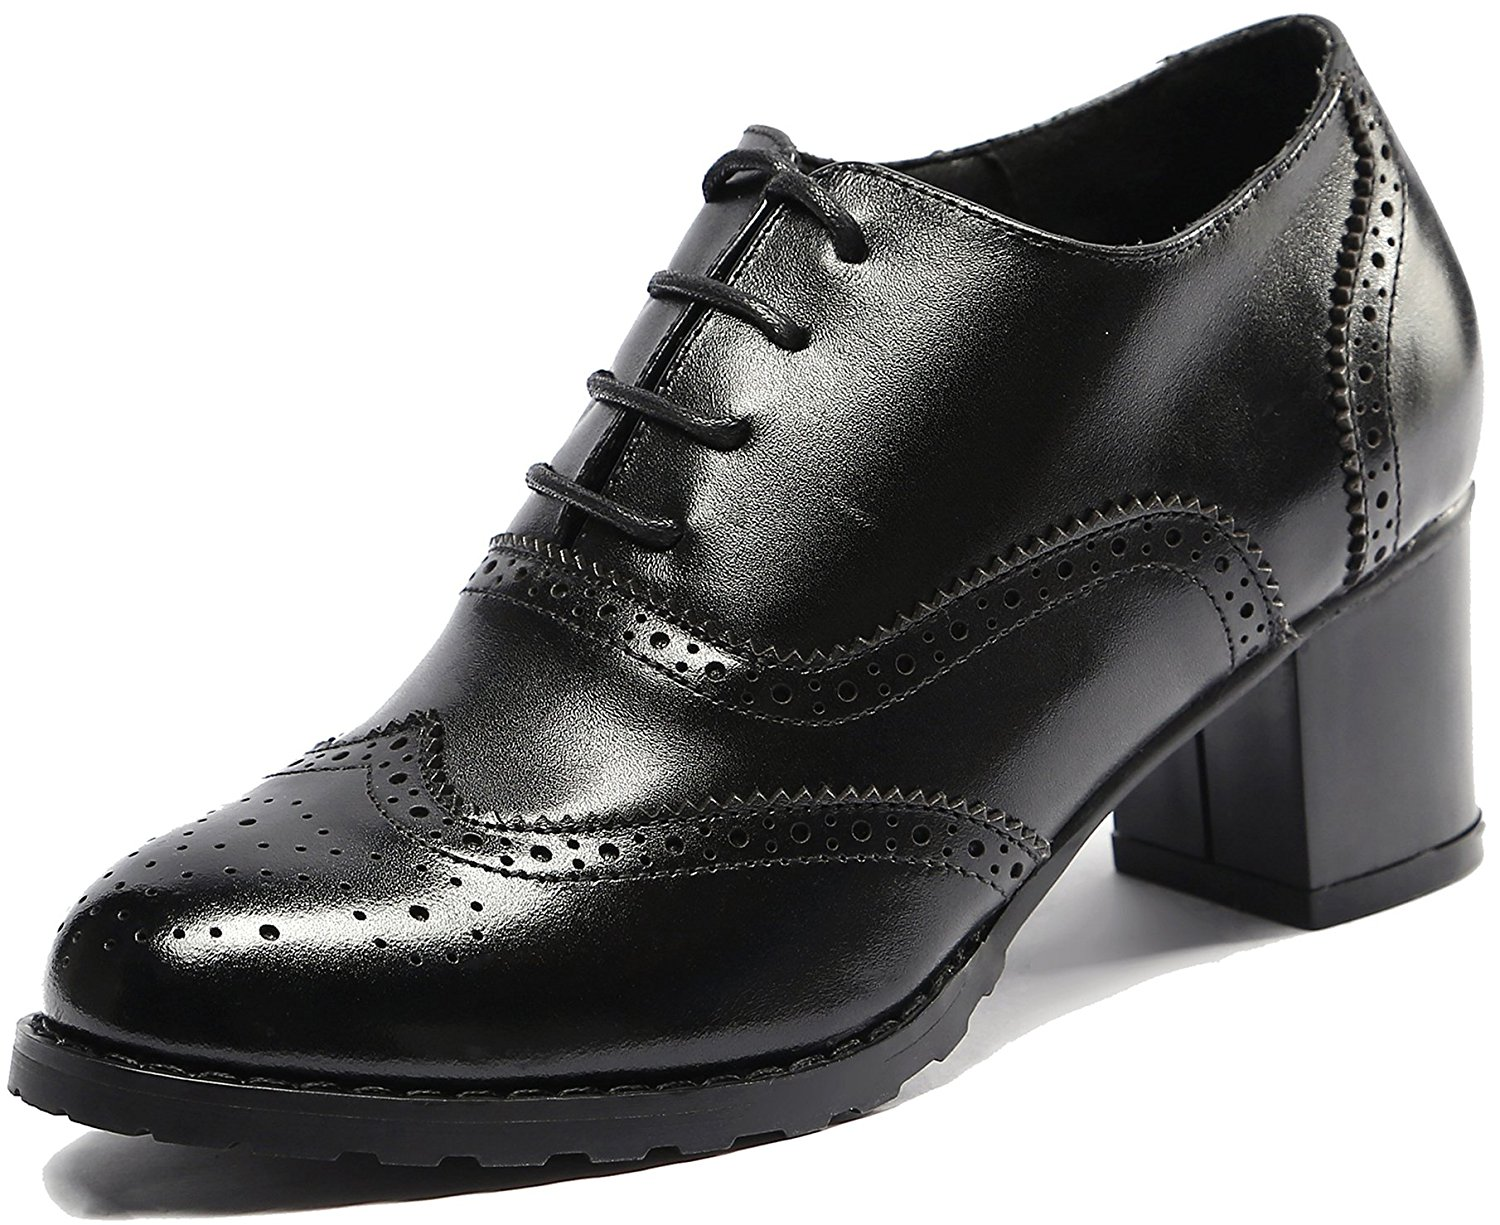 U-lite Womens Perforated Lace-up Wingtip Leather Pump Oxfords Vintage Oxford Shoes Brogues